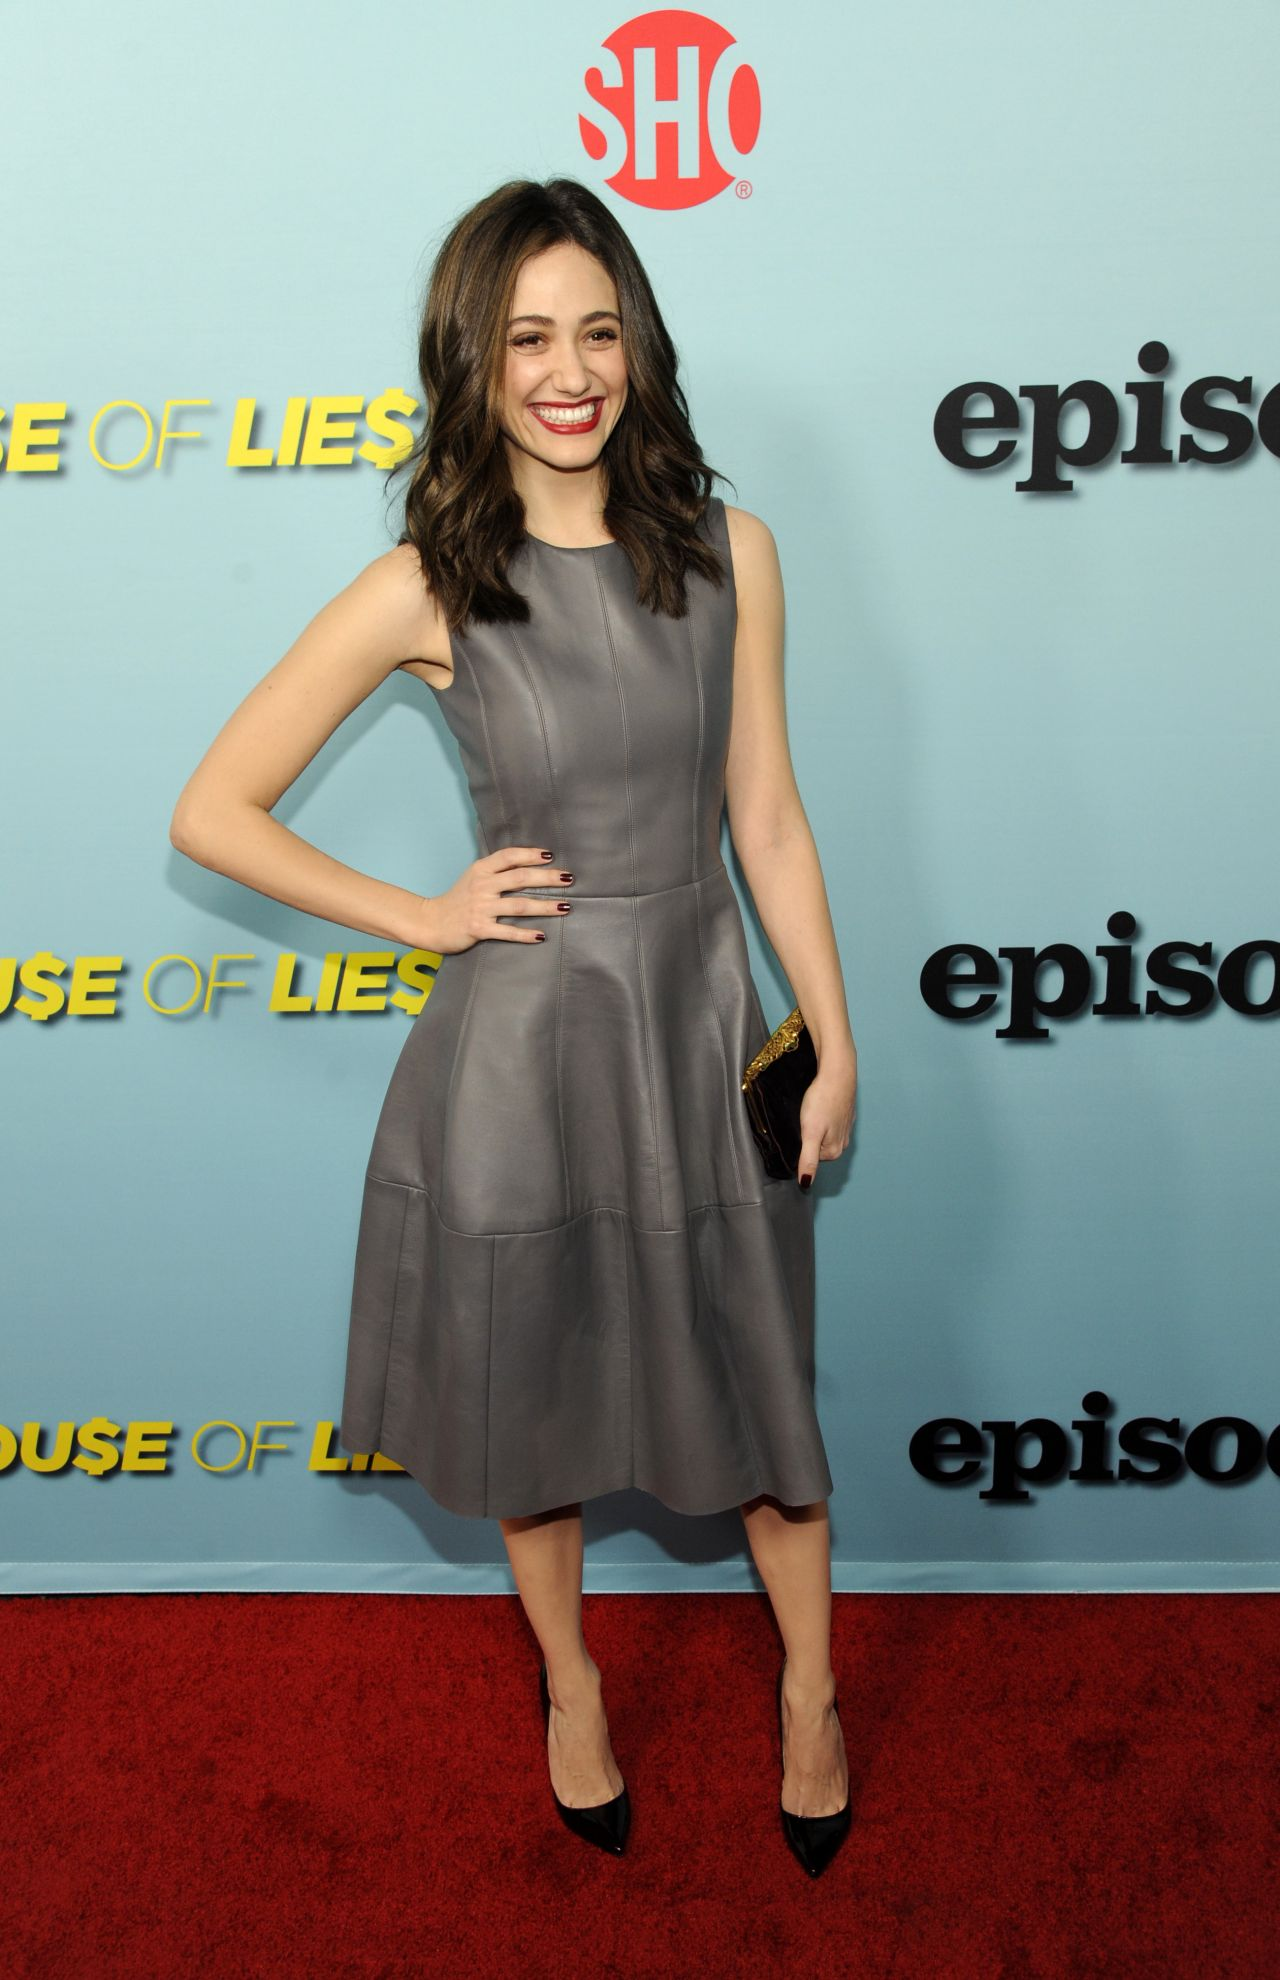 emmy-rossum-shameless-house-of-lies-and-episodes-premiere-in-west-hollywood_5